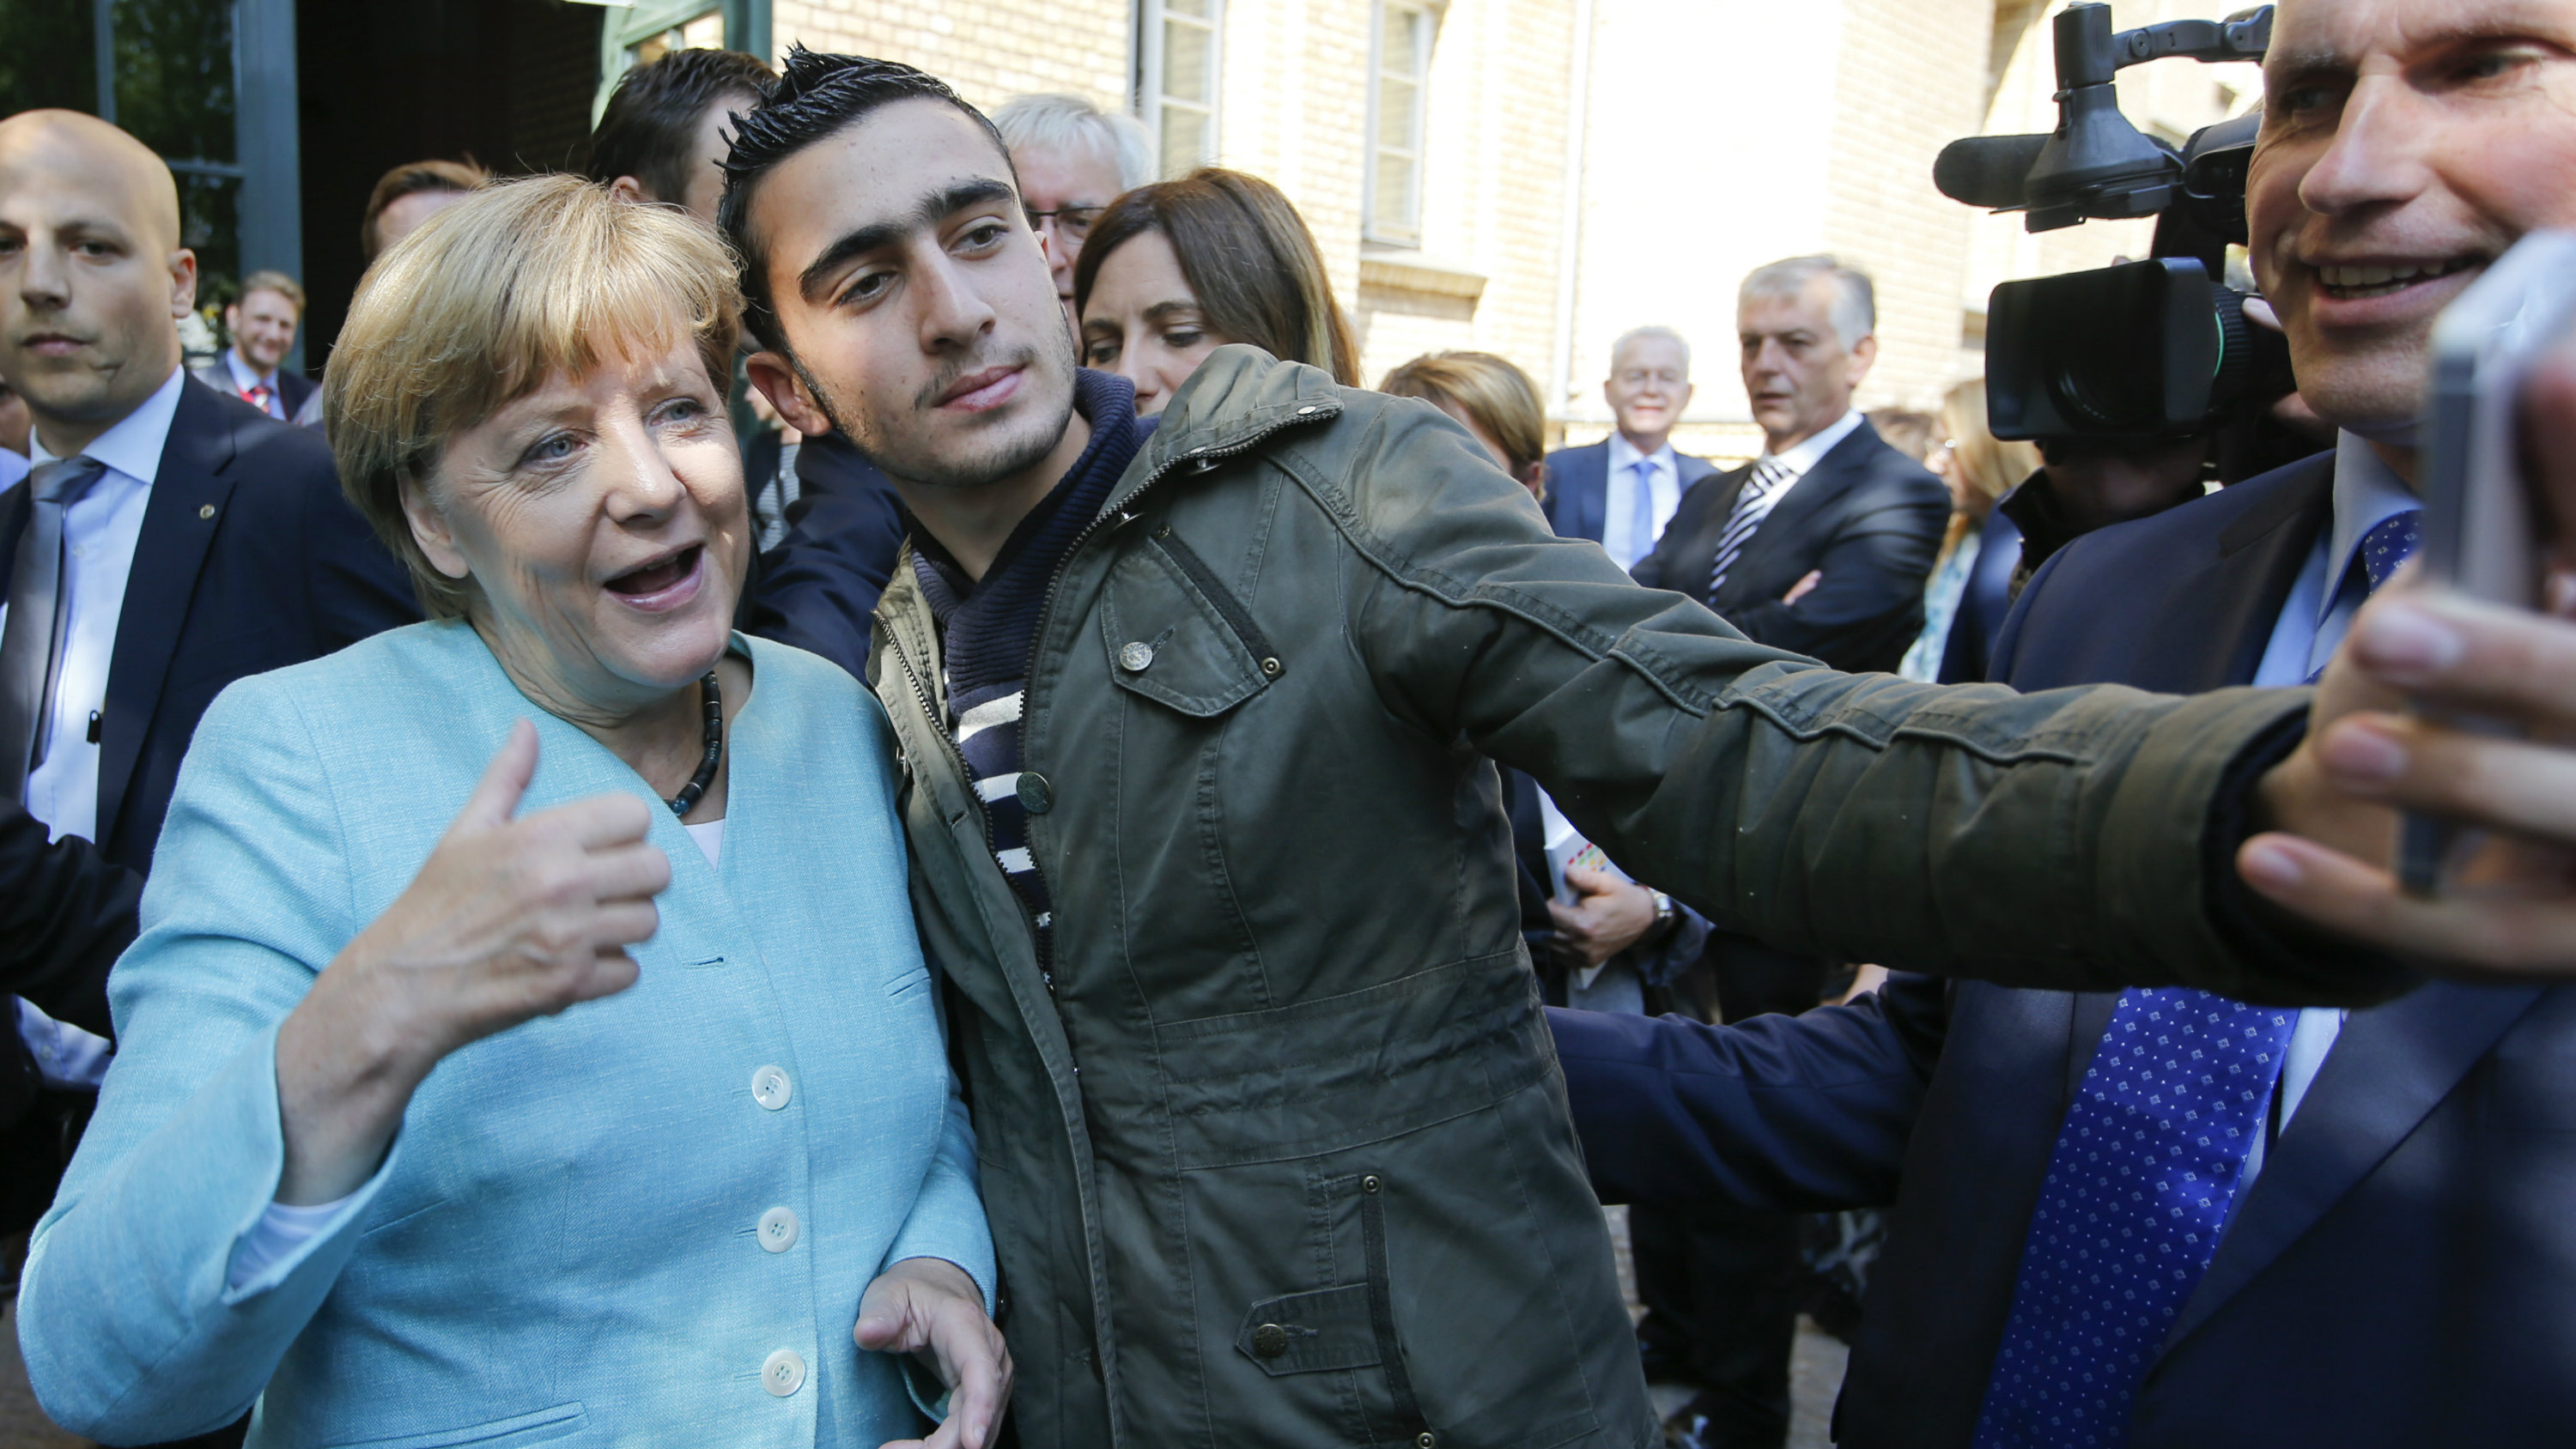 A migrant takes a selfie with German Chancellor Angela Merkel outside a refugee camp near the Federal Office for Migration and Refugees after registration at Berlin's Spandau district, Germany September 10, 2015